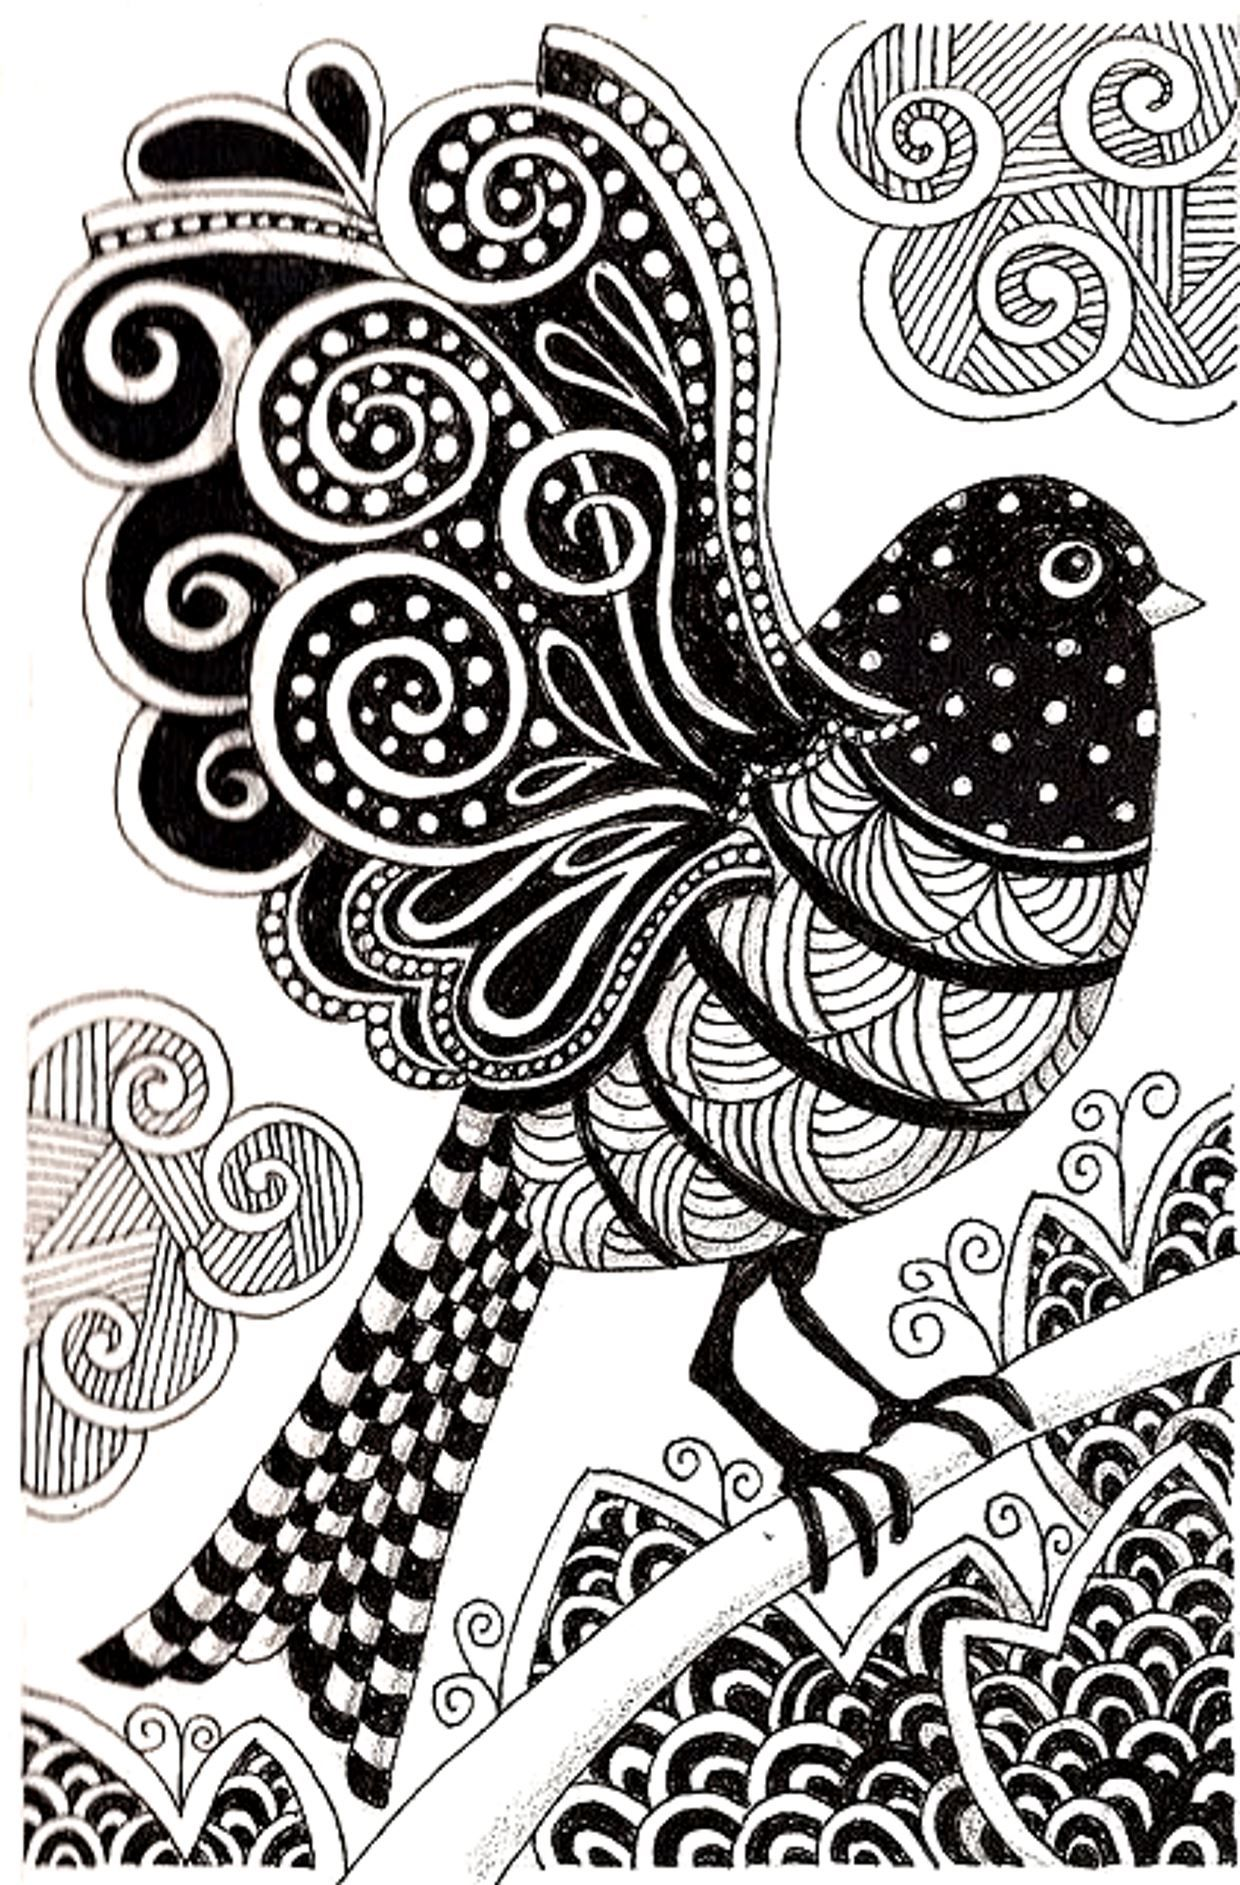 Dark Bird Drawing With Simple Zentangle Patterns From The Gallery Animals Tangle Art Bird Drawings Zentangle Drawings